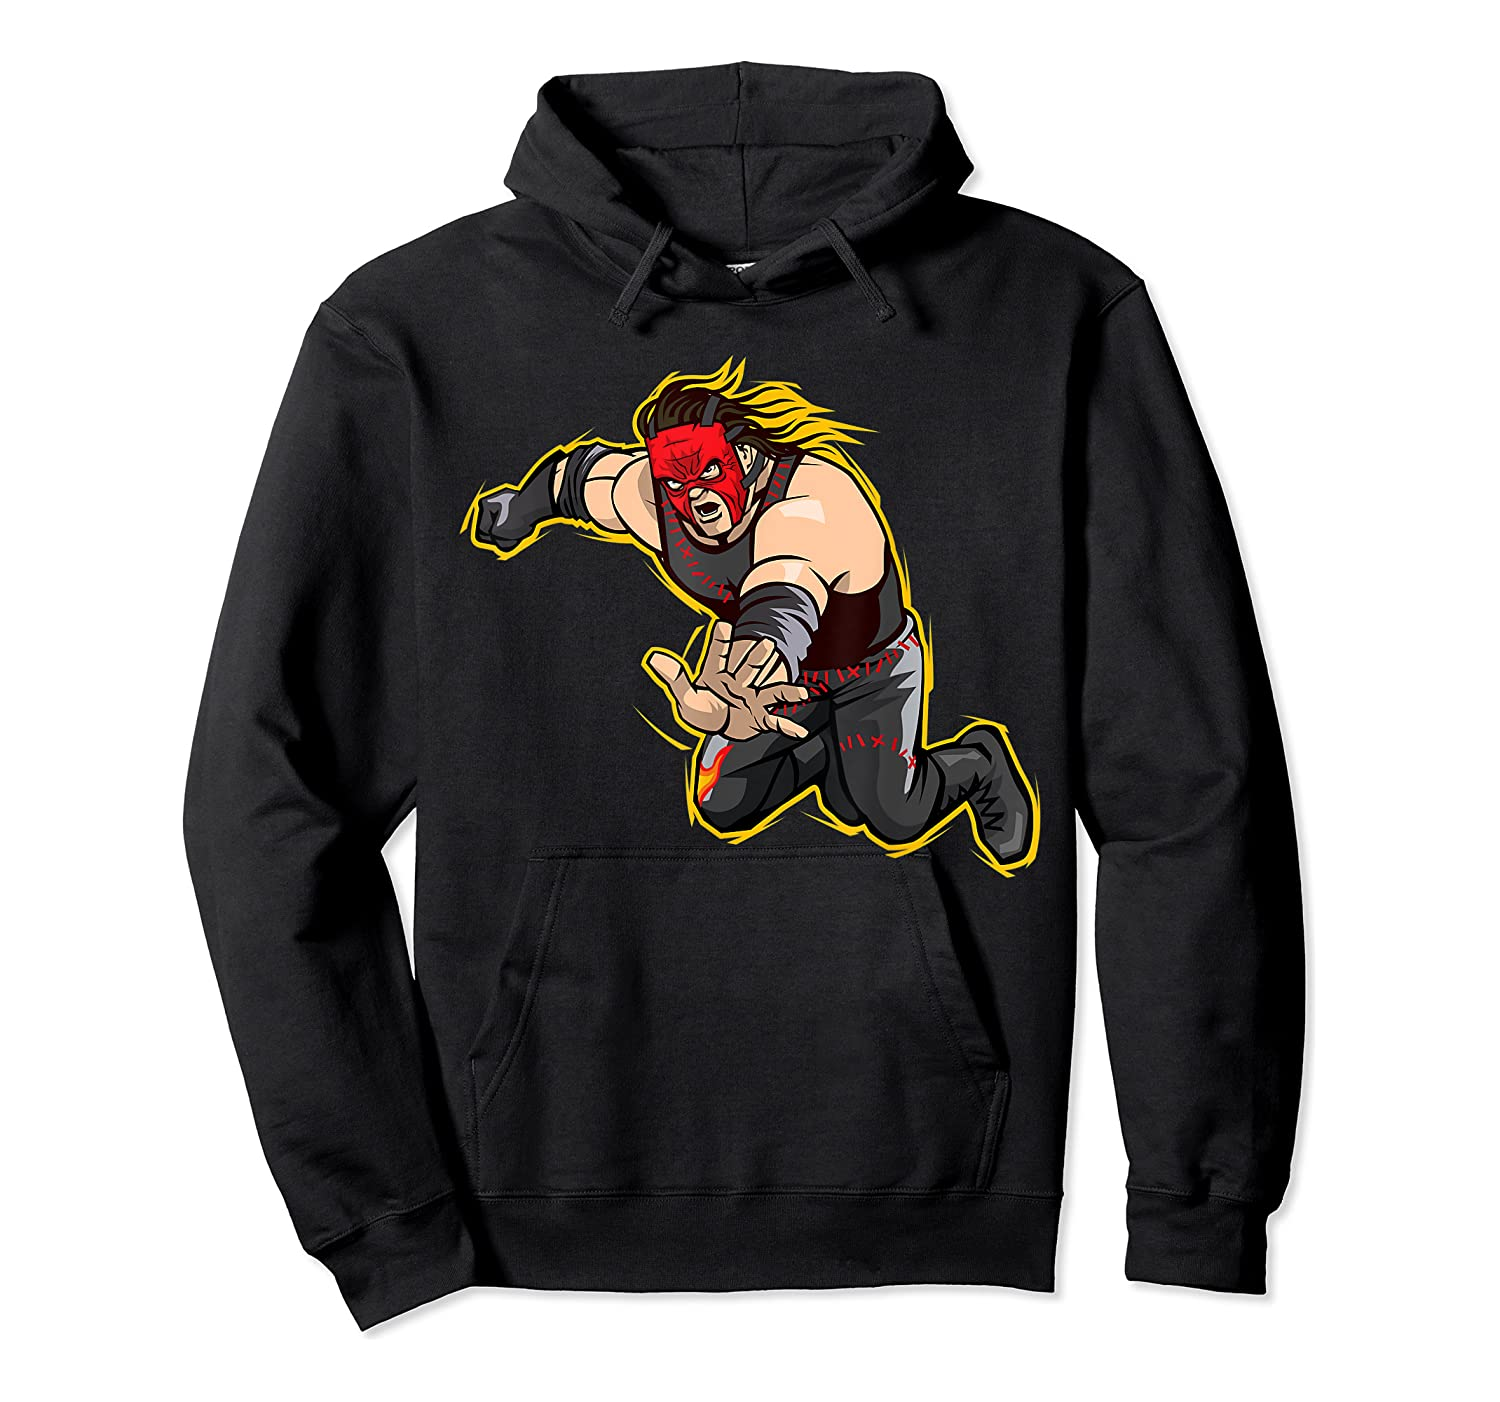 Kane Clothesline Graphic Shirts Unisex Pullover Hoodie